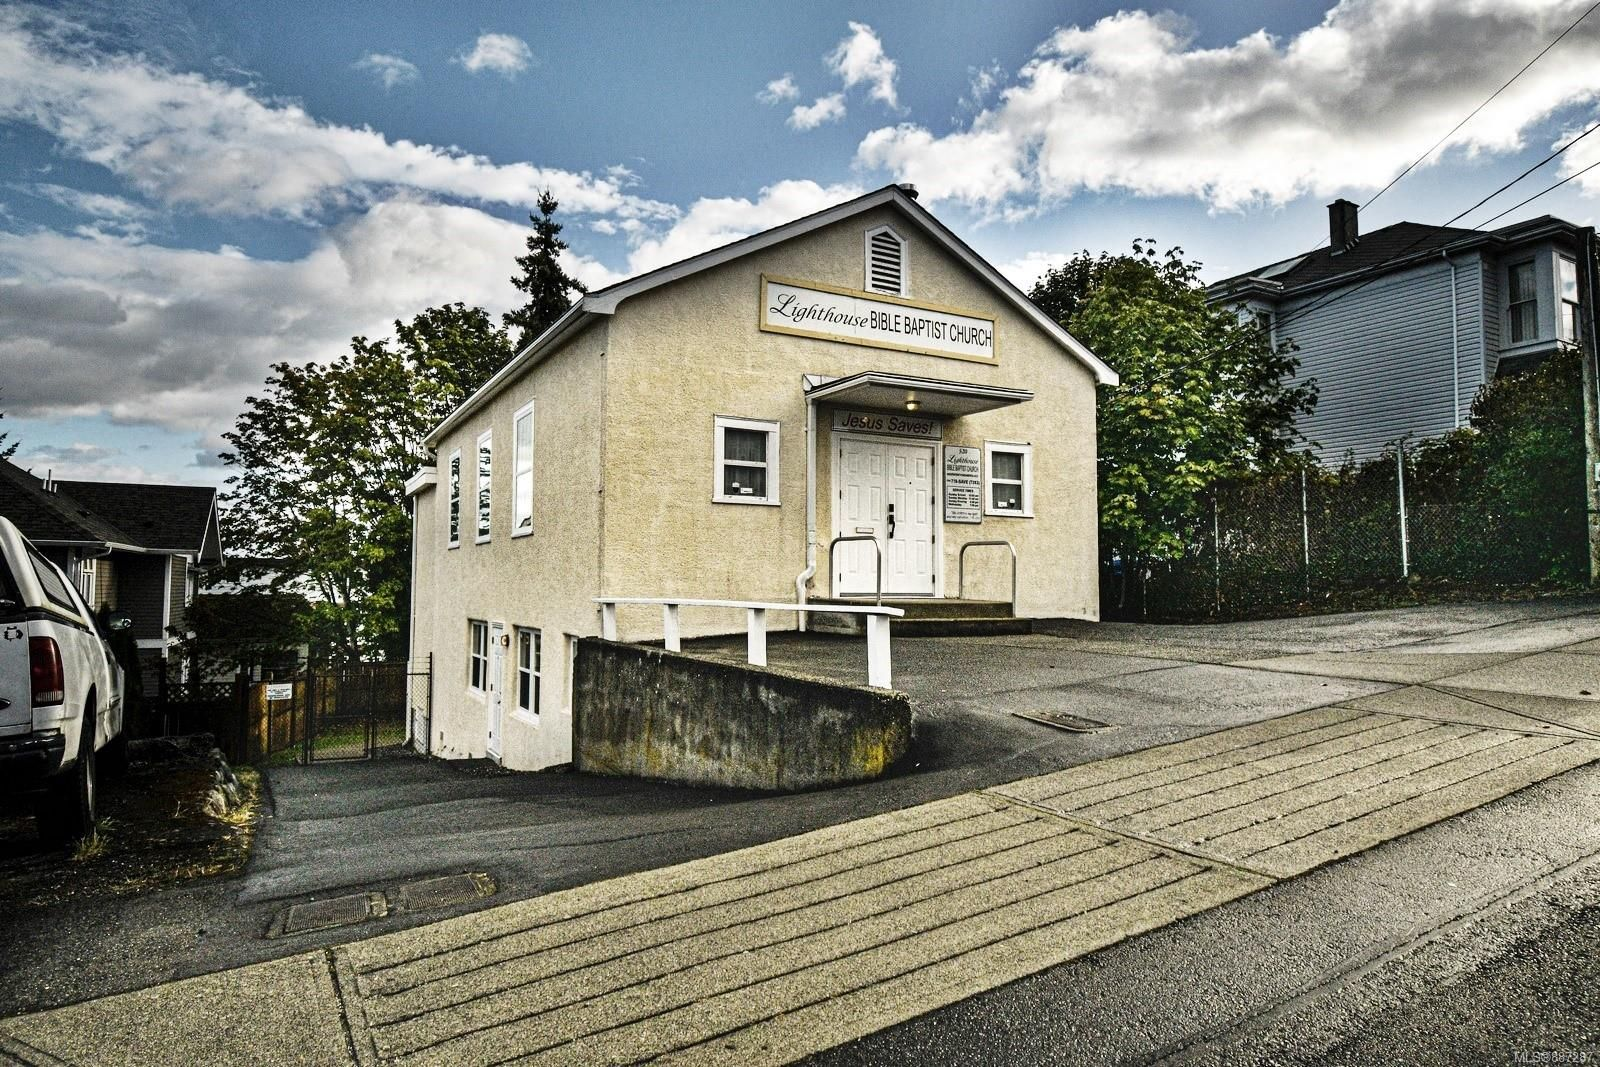 Main Photo: 520 Prideaux St in : Na Old City Mixed Use for sale (Nanaimo)  : MLS®# 887287